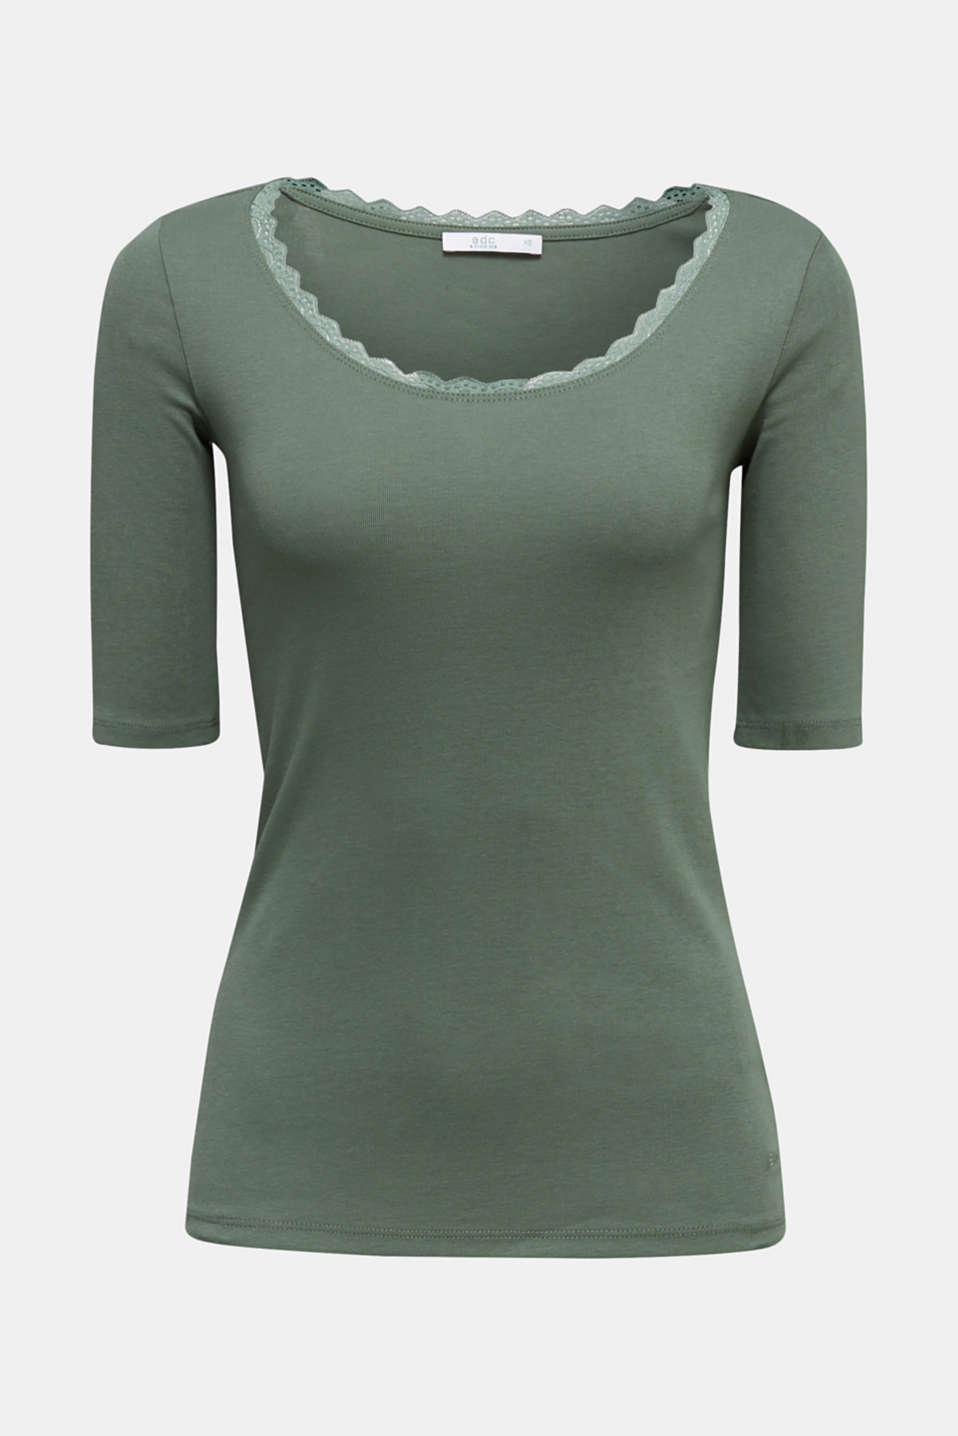 Ribbed shirt with a lace-trimmed neckline, 100% cotton, KHAKI GREEN 4, detail image number 6